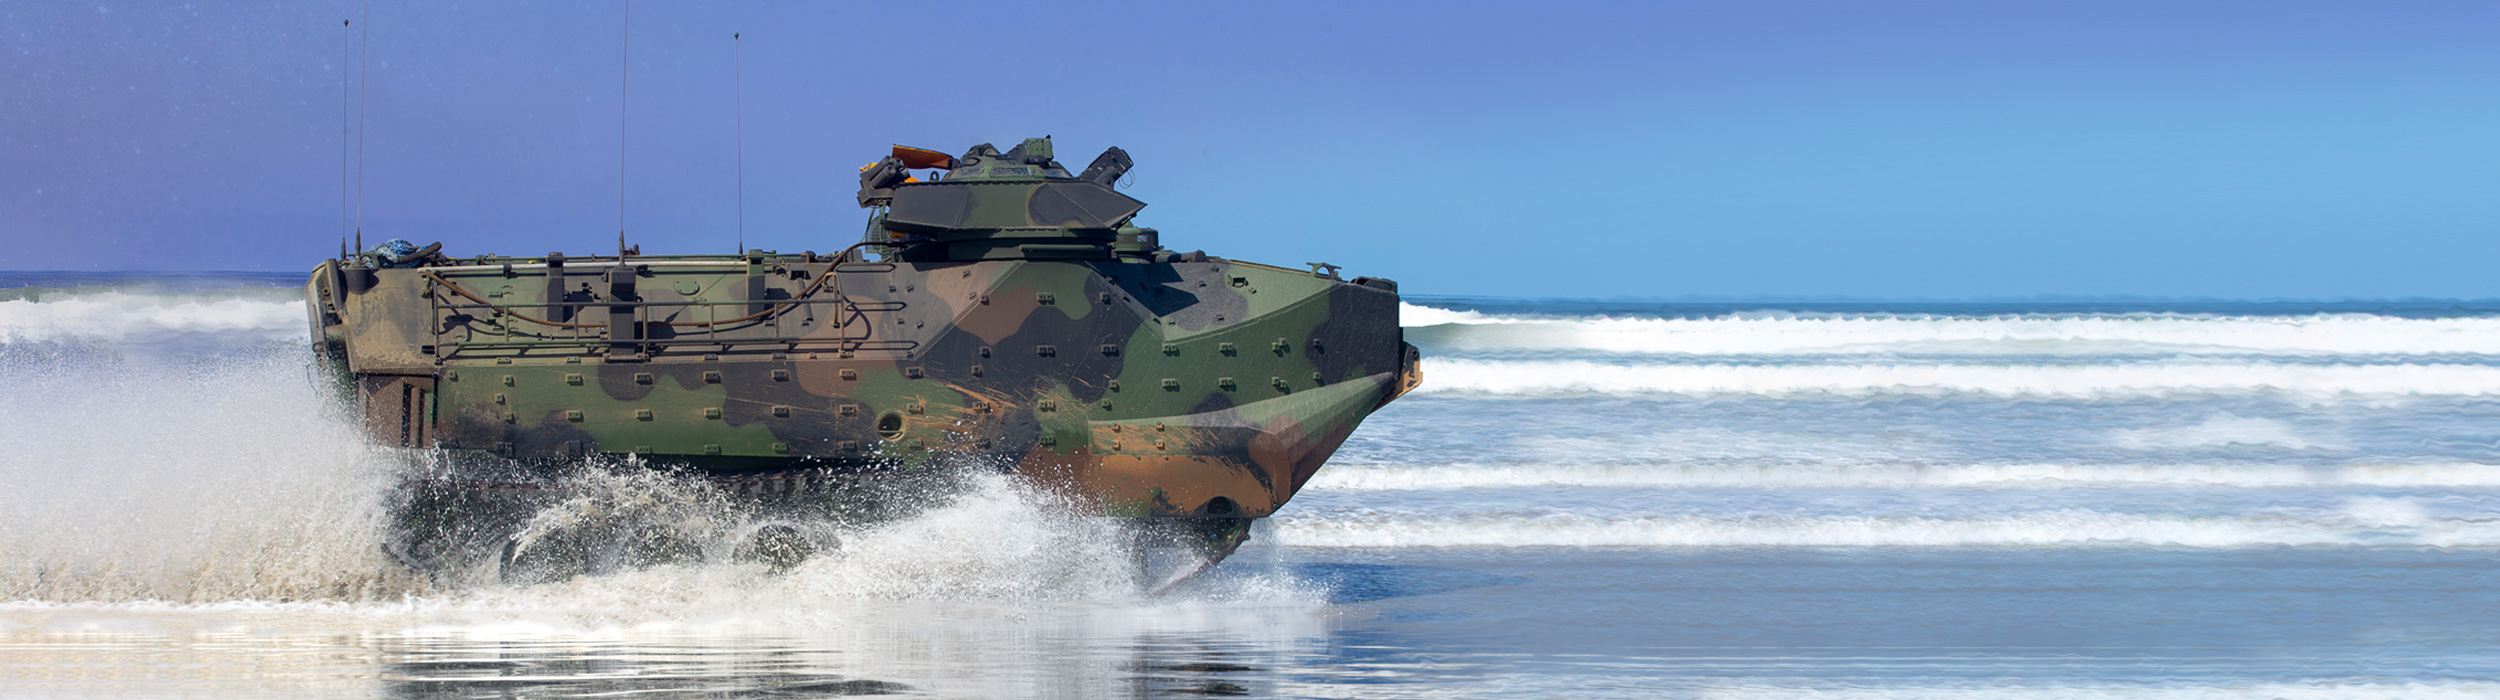 Ground Image - Assault vehicle on beach